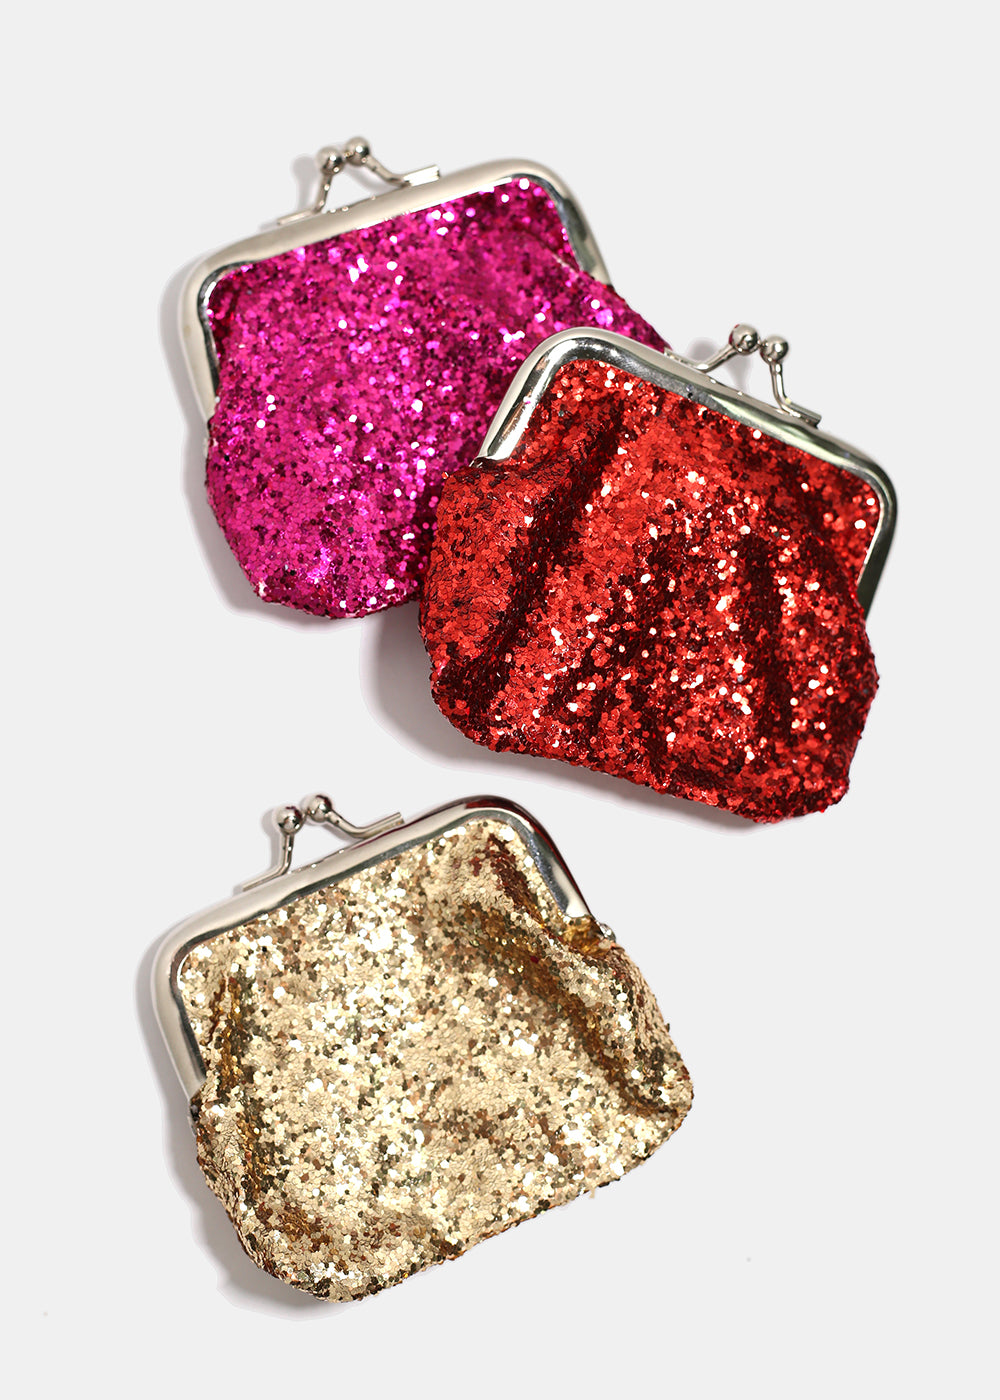 Glitter Kiss-Lock Coin Purse